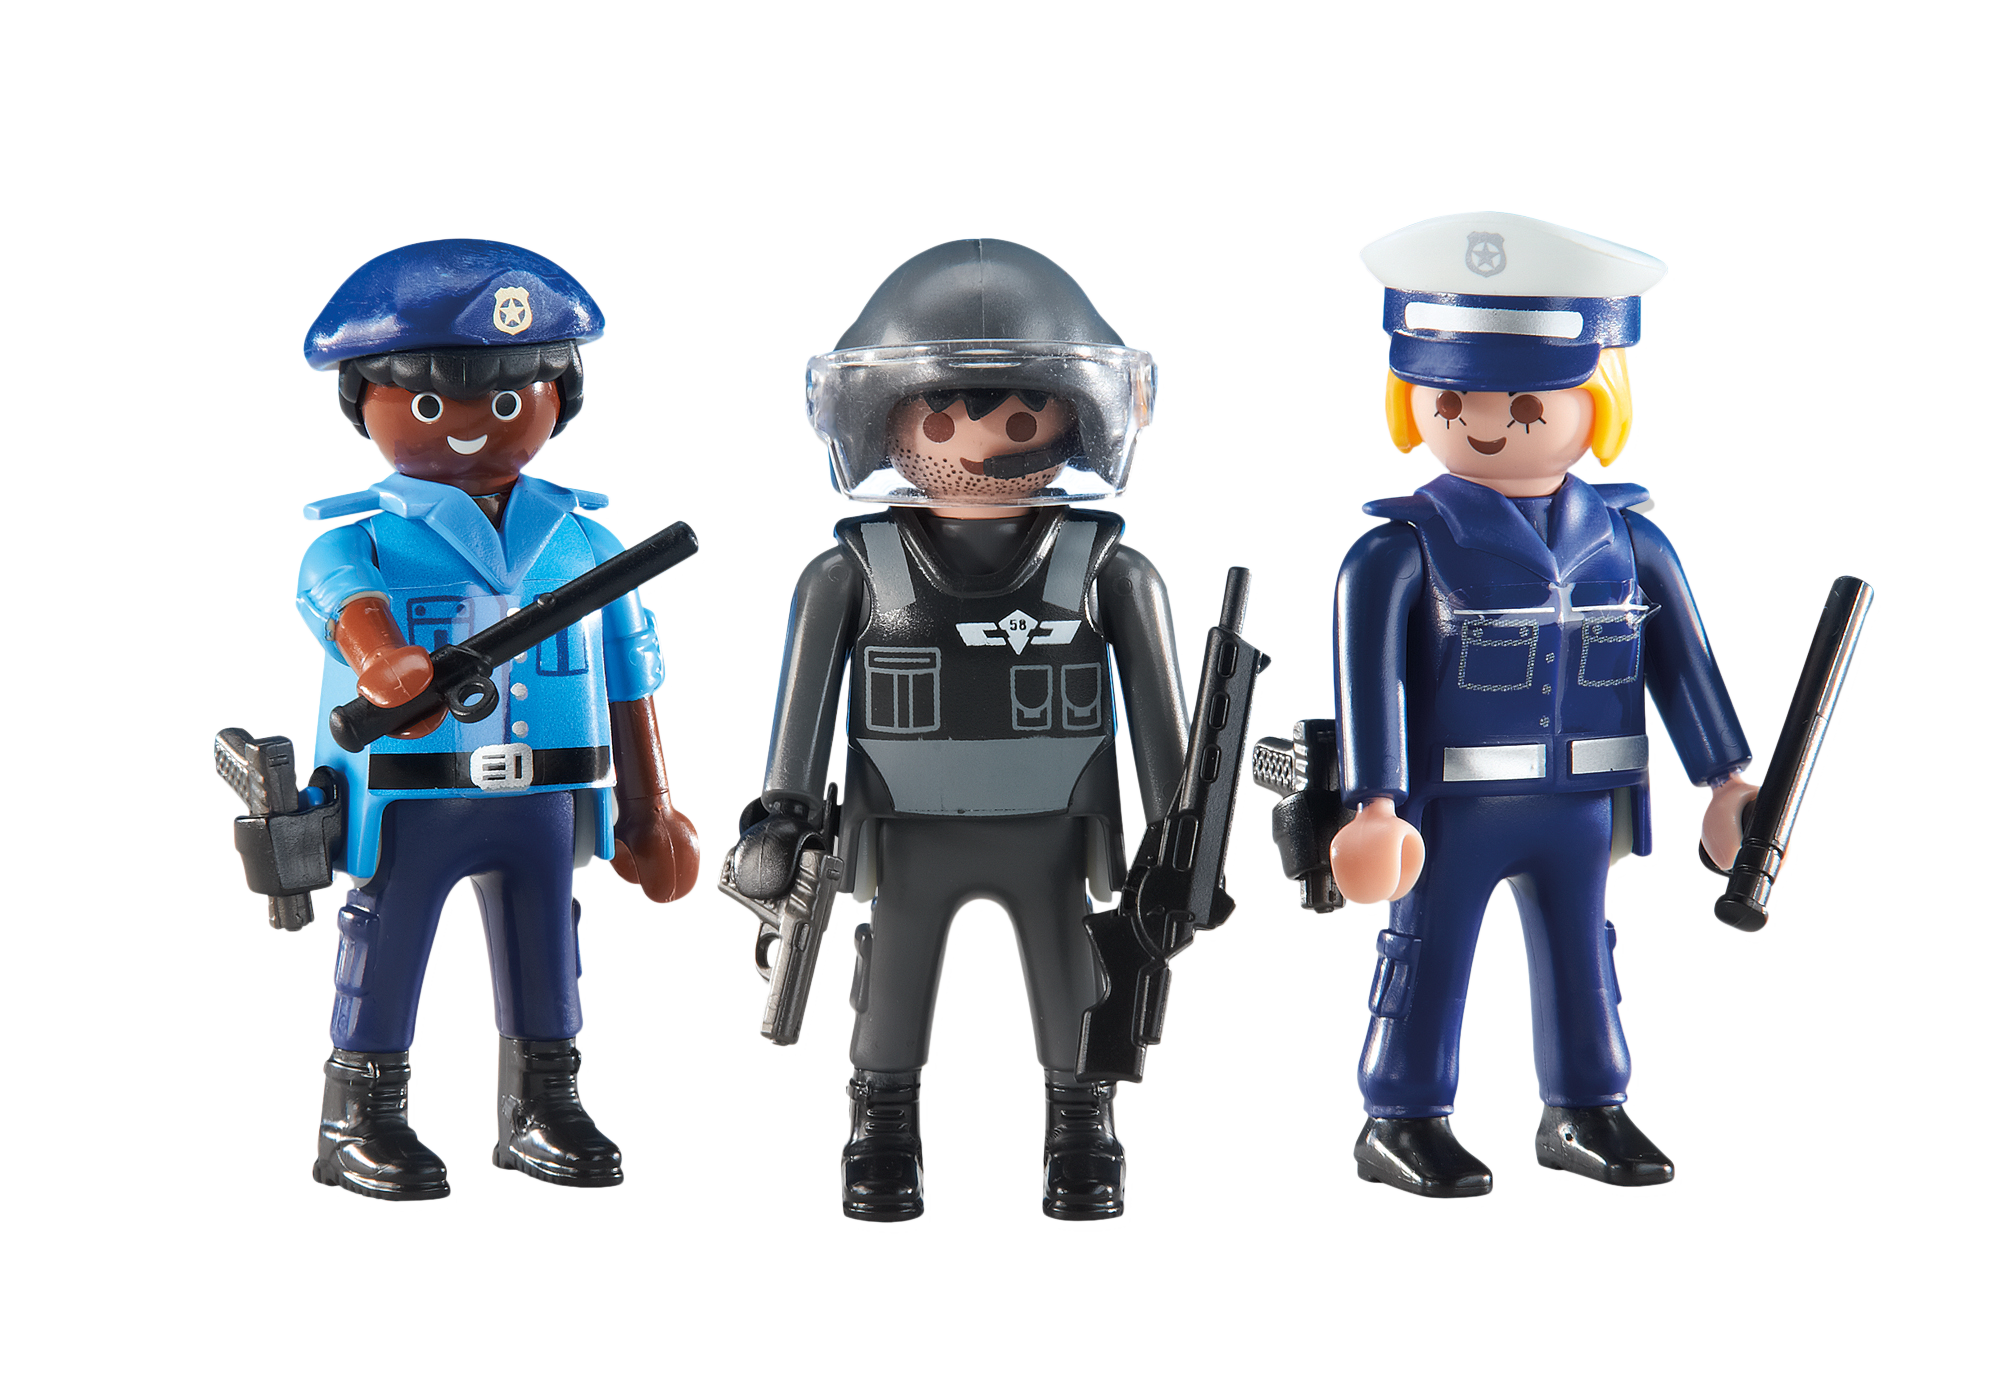 http://media.playmobil.com/i/playmobil/6501_product_detail